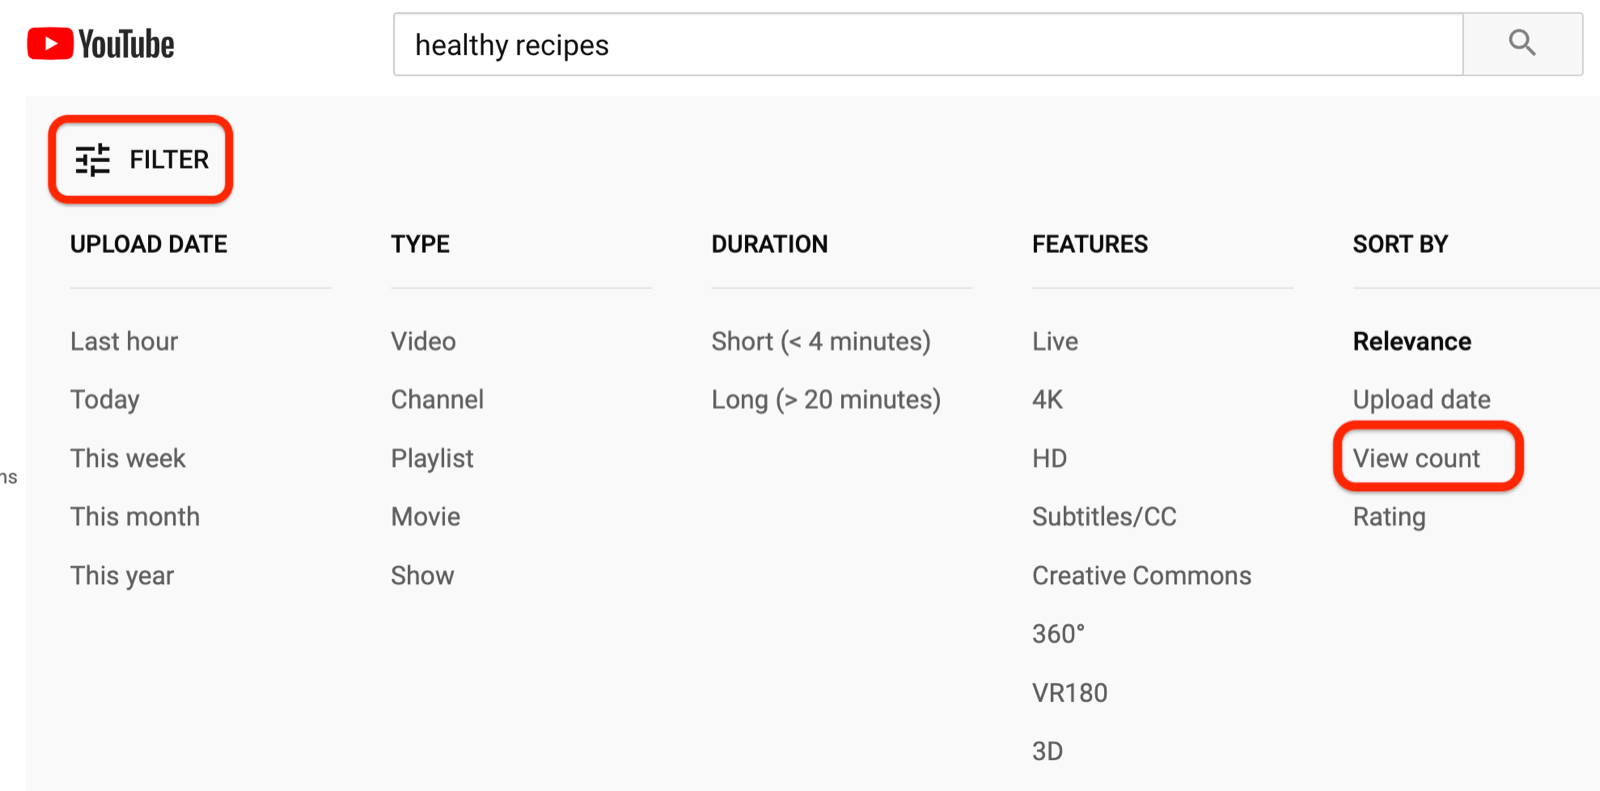 filter YouTube search results by view count